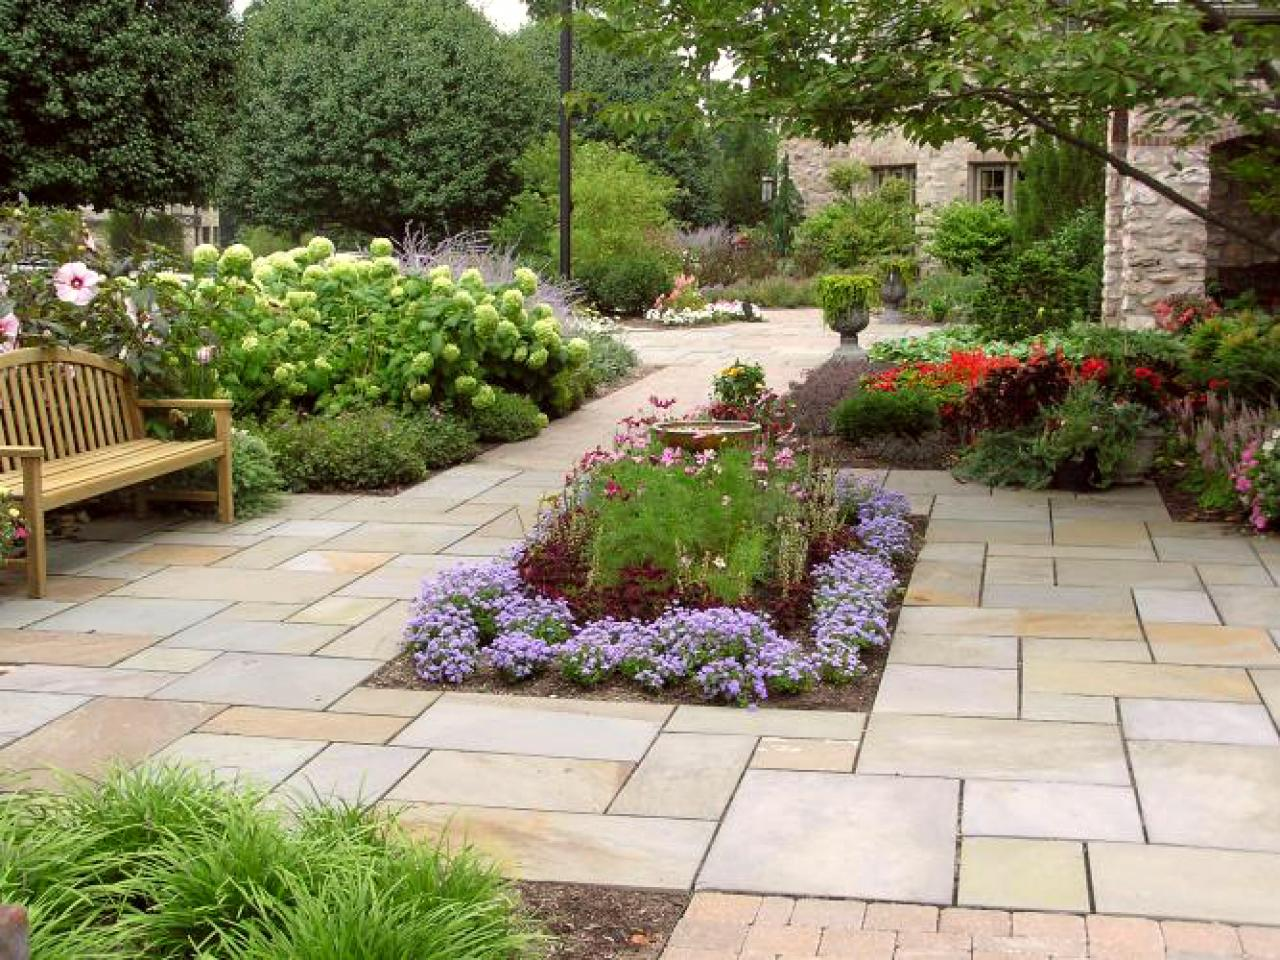 Plants for your patio hgtv for Patio garden ideas photos